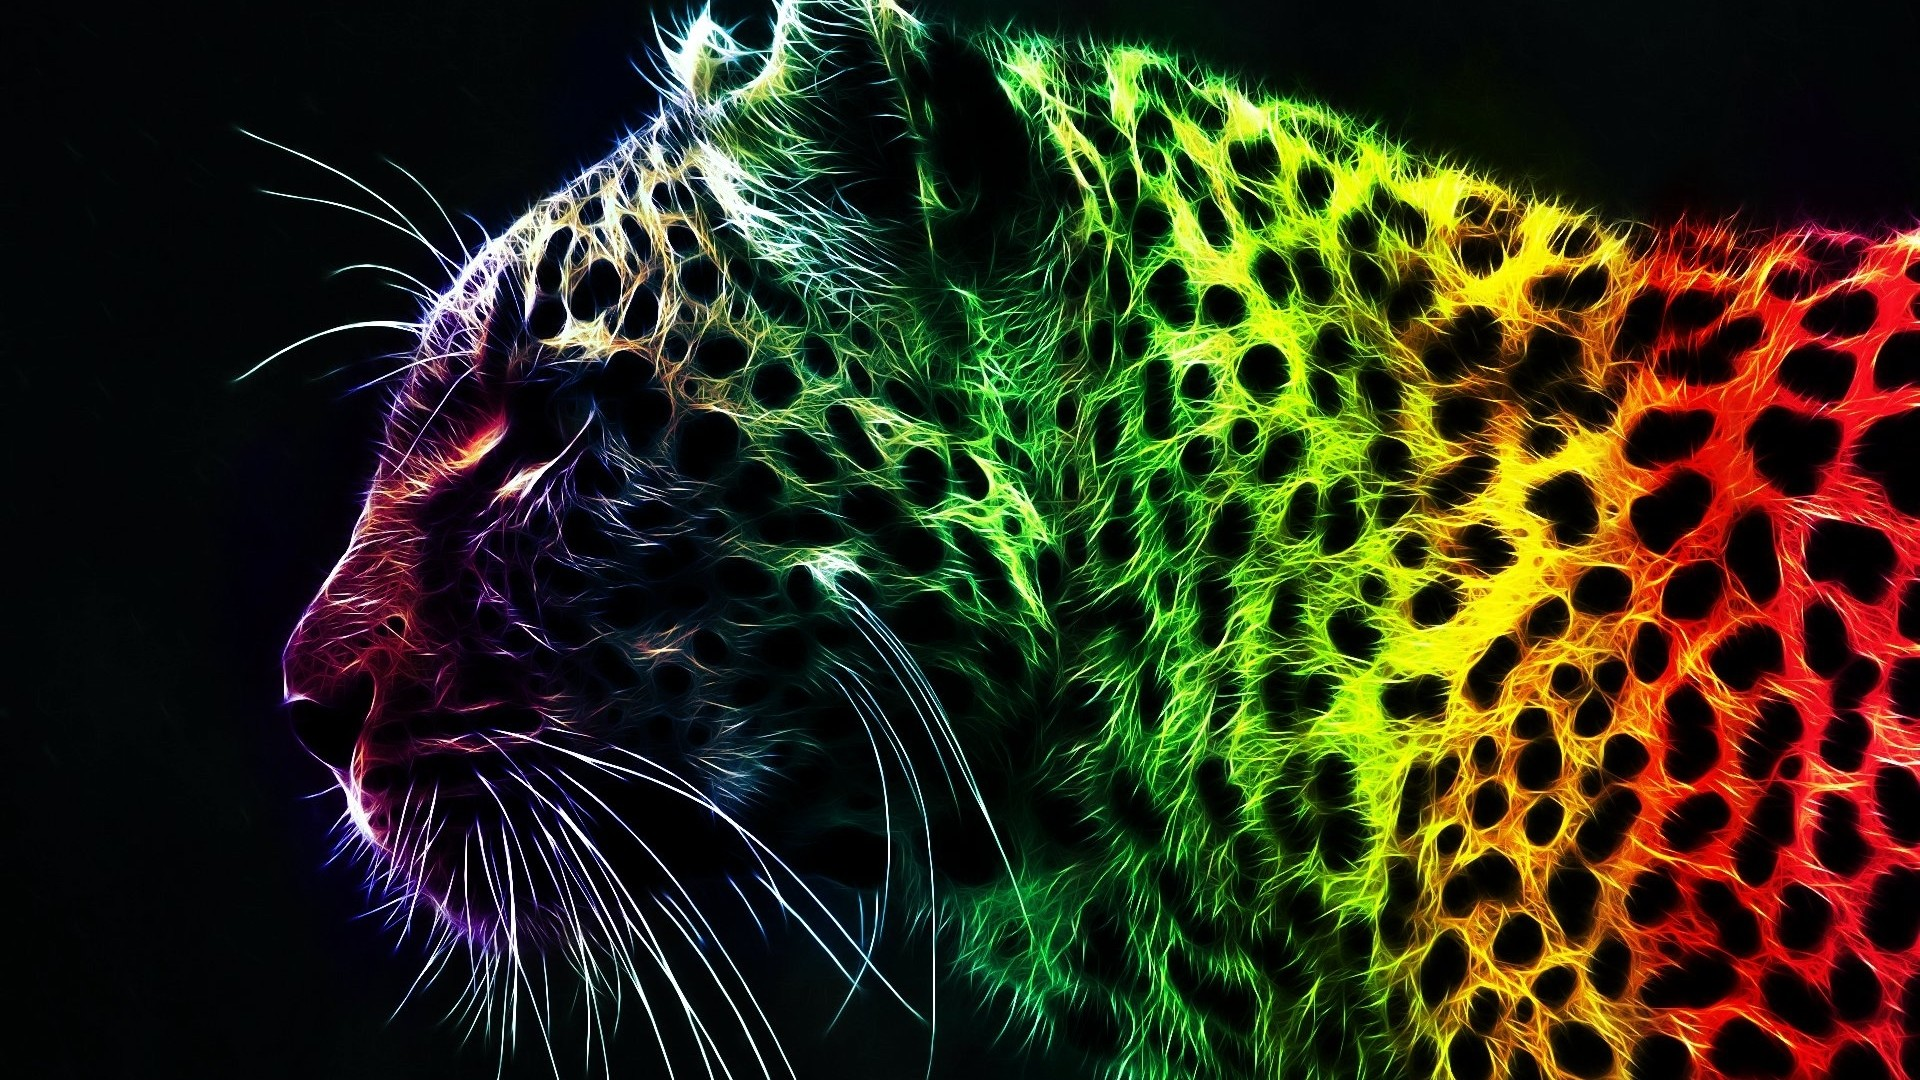 HD Abstract Wallpapers 1920x1080 (61+ images) Hd Wallpaper 1920x1080